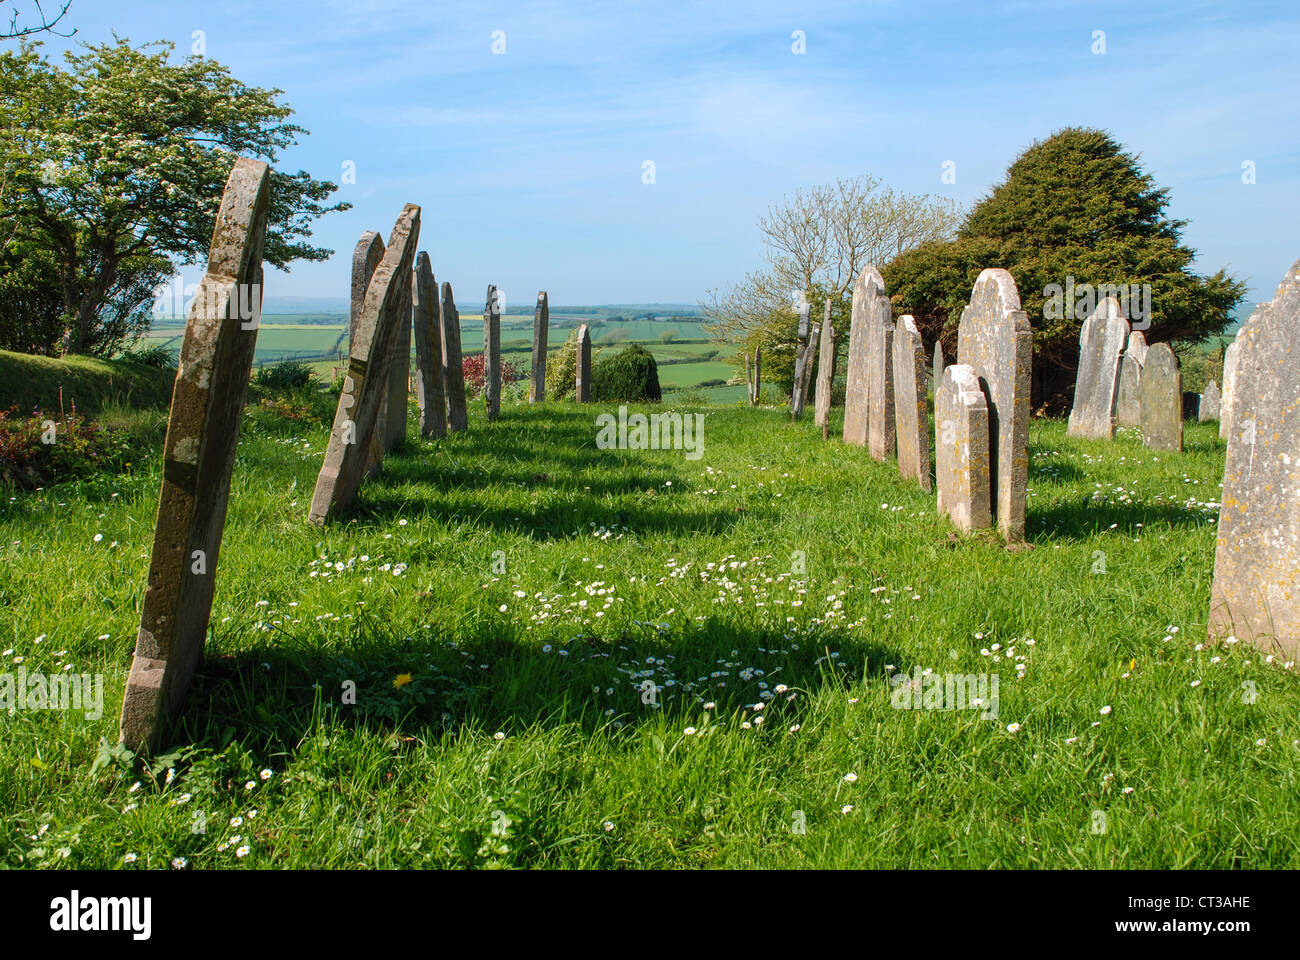 Devon Church graveyard in the rolling hills of the south hams - Stock Image